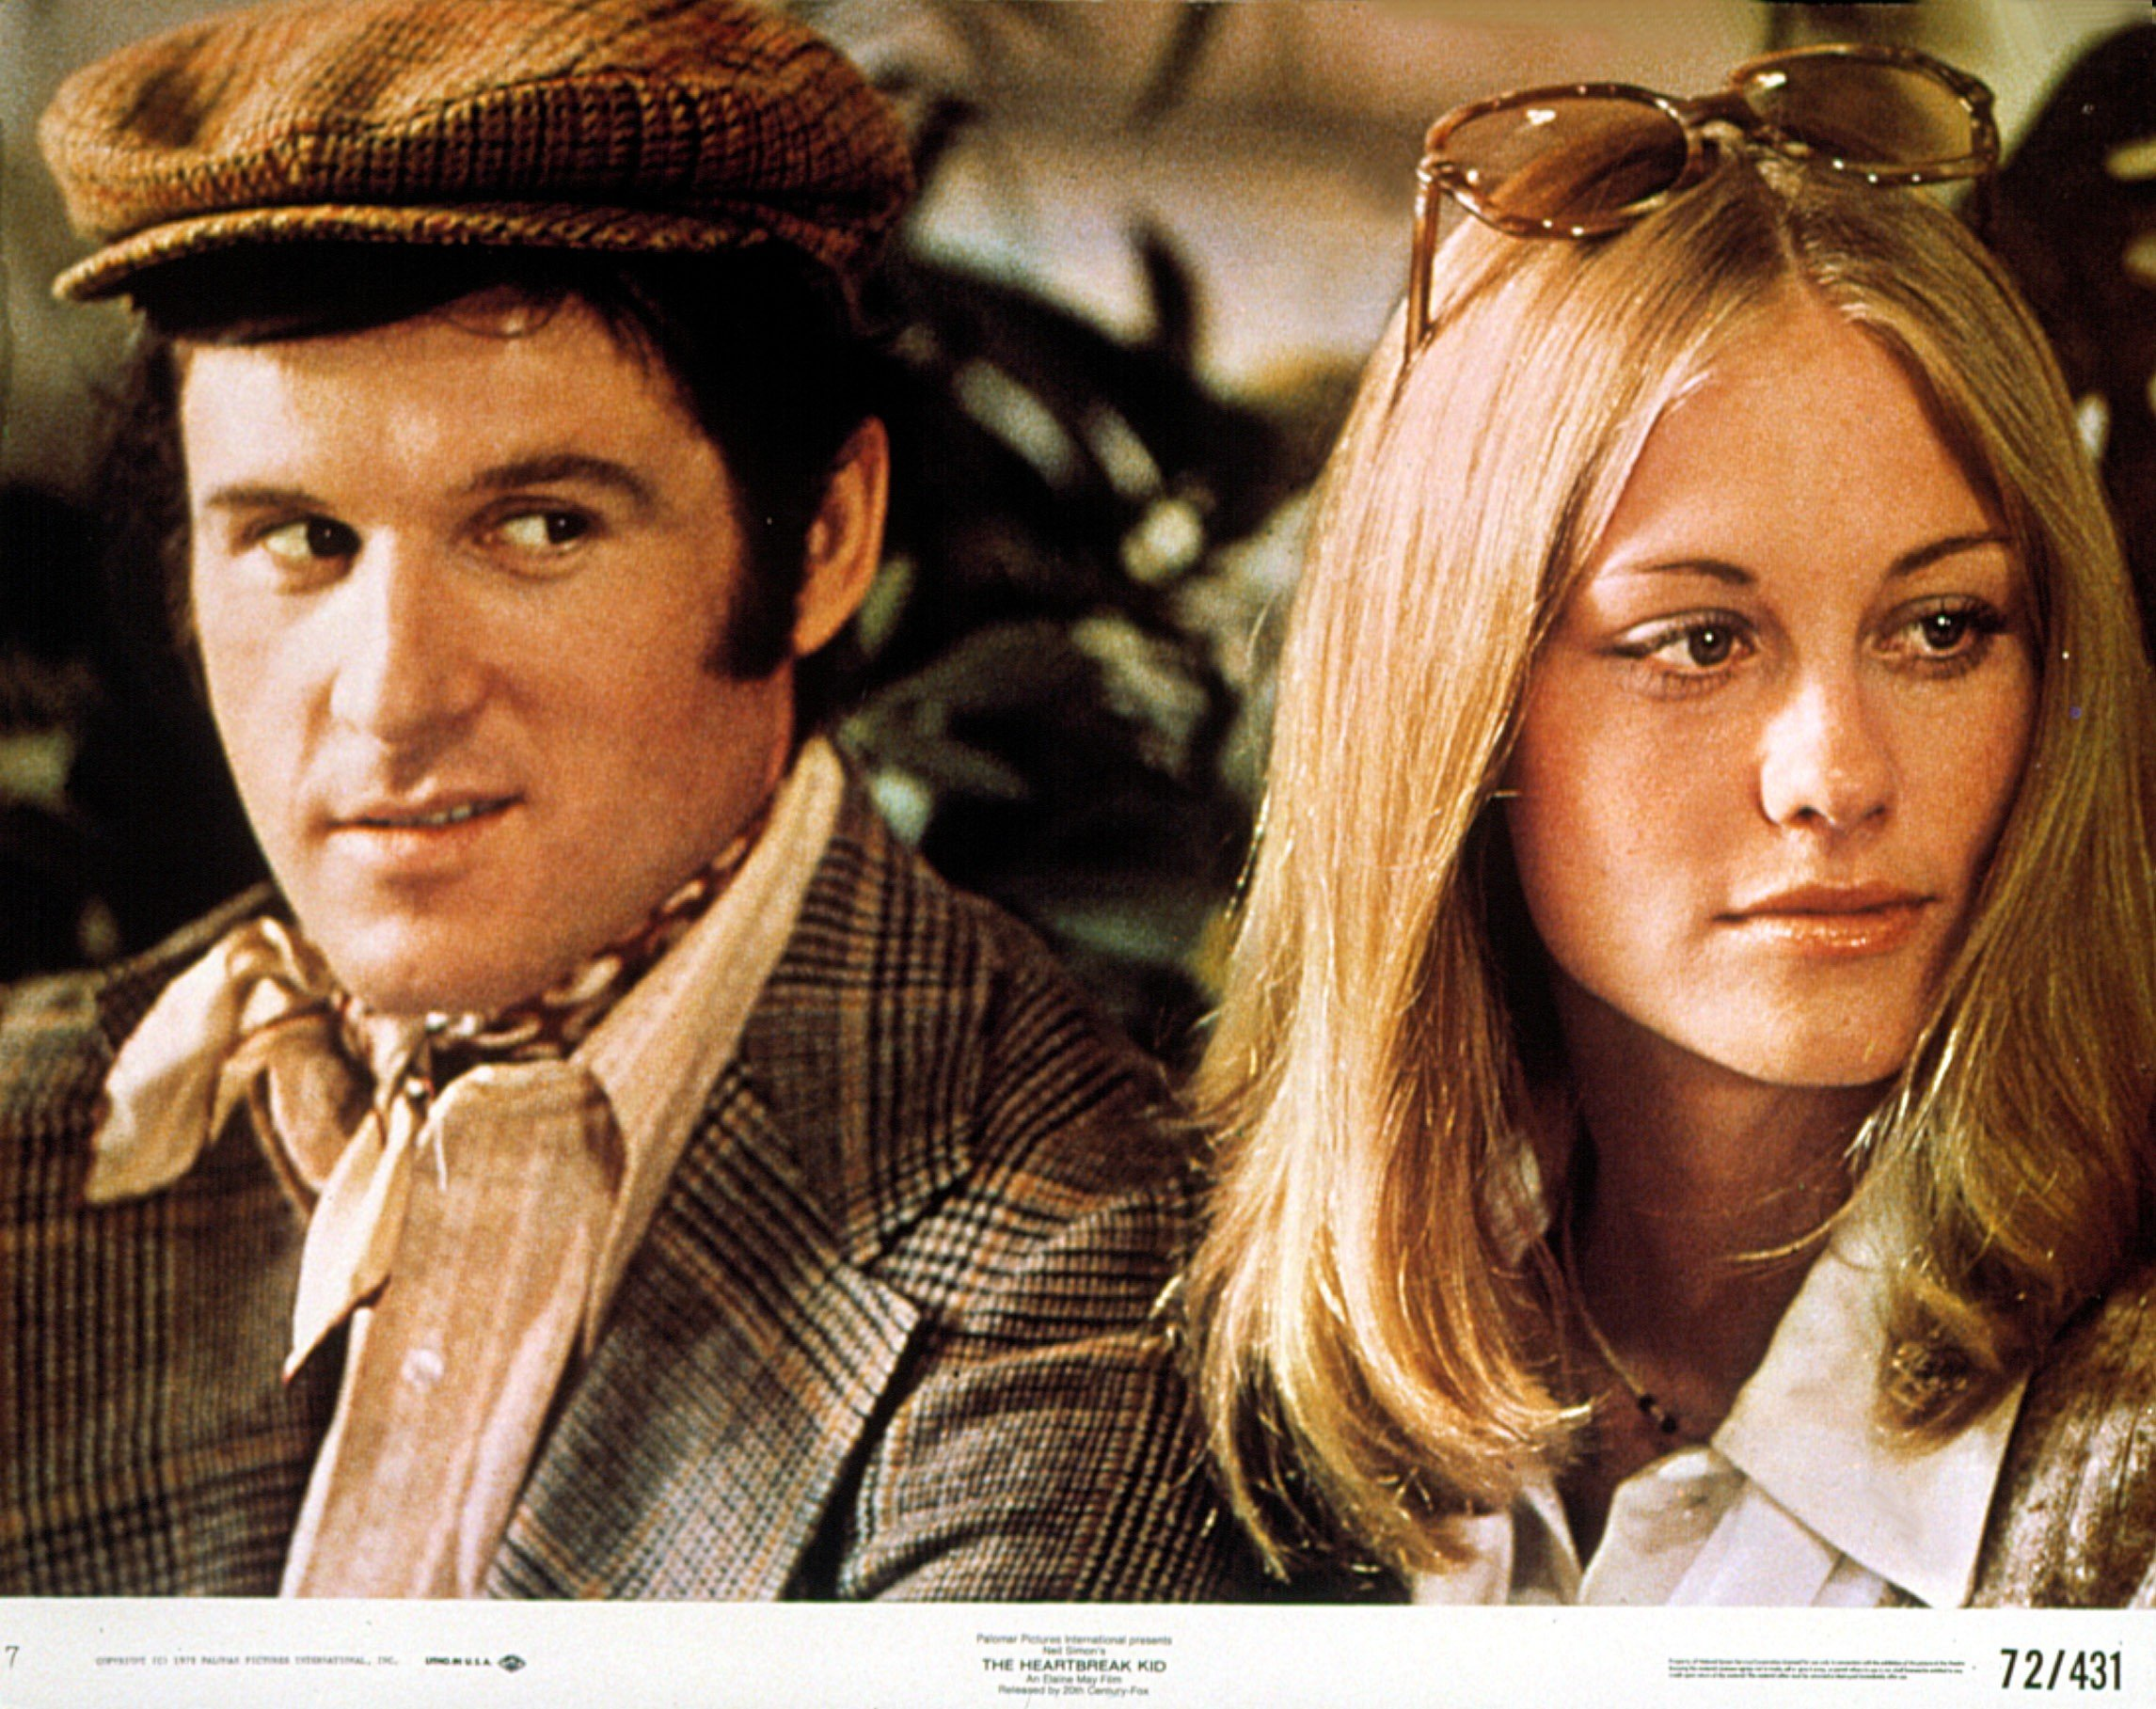 """Charles Grodin as Lenny Cantrow with Cybill Shepherd as Kelly Corcoran in the 1972 film, """"The Heartbreak Kid."""" 